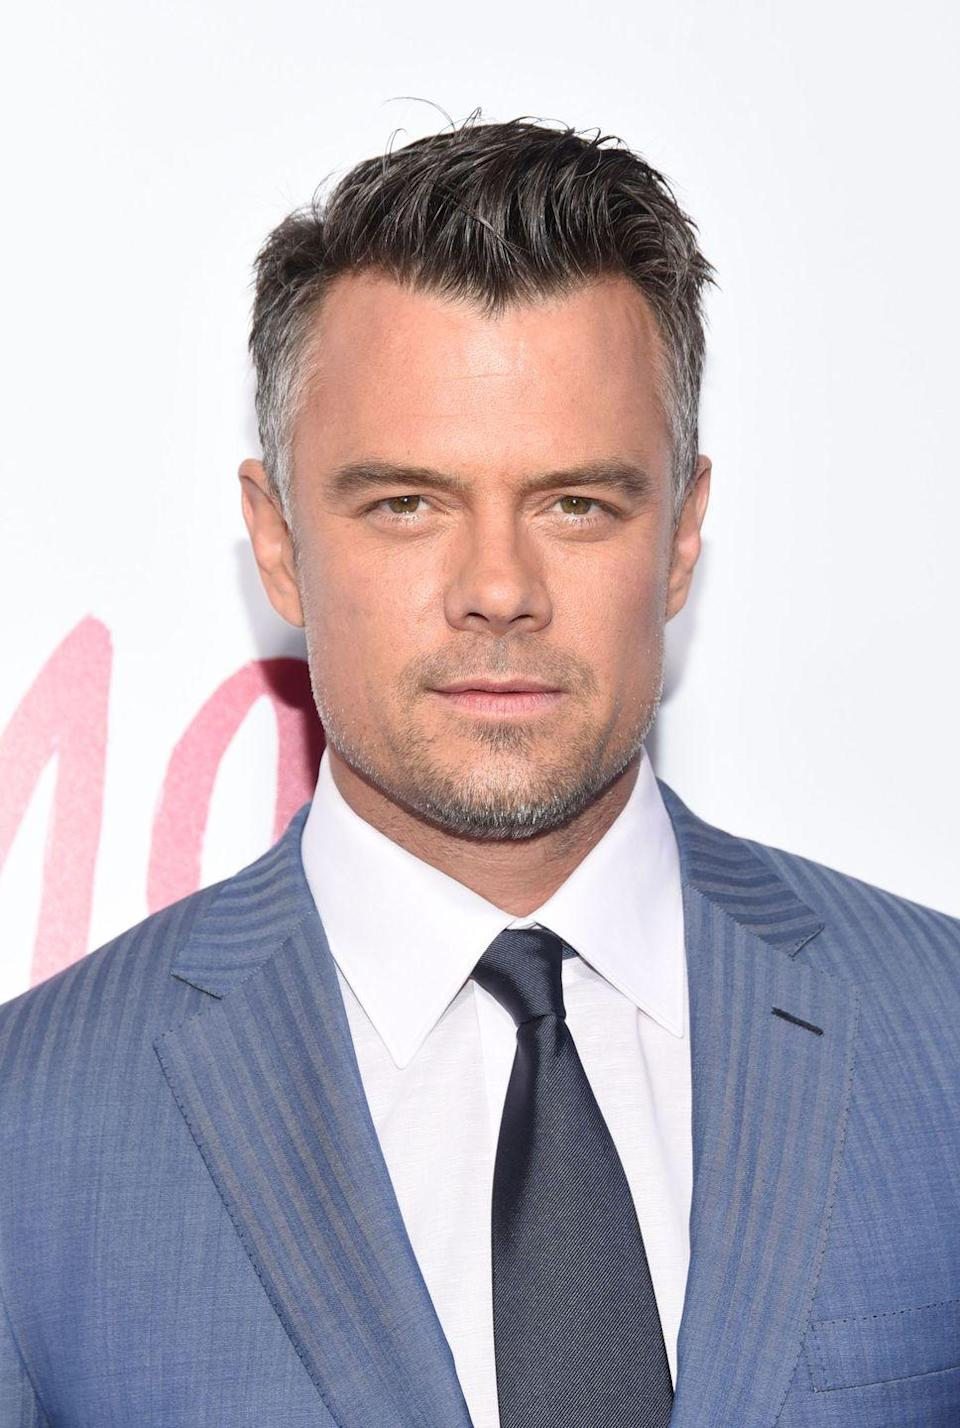 <p>At 46, Duhamel welcomed what comes with aging by letting his hair go gray at the temples and on the sides.</p>